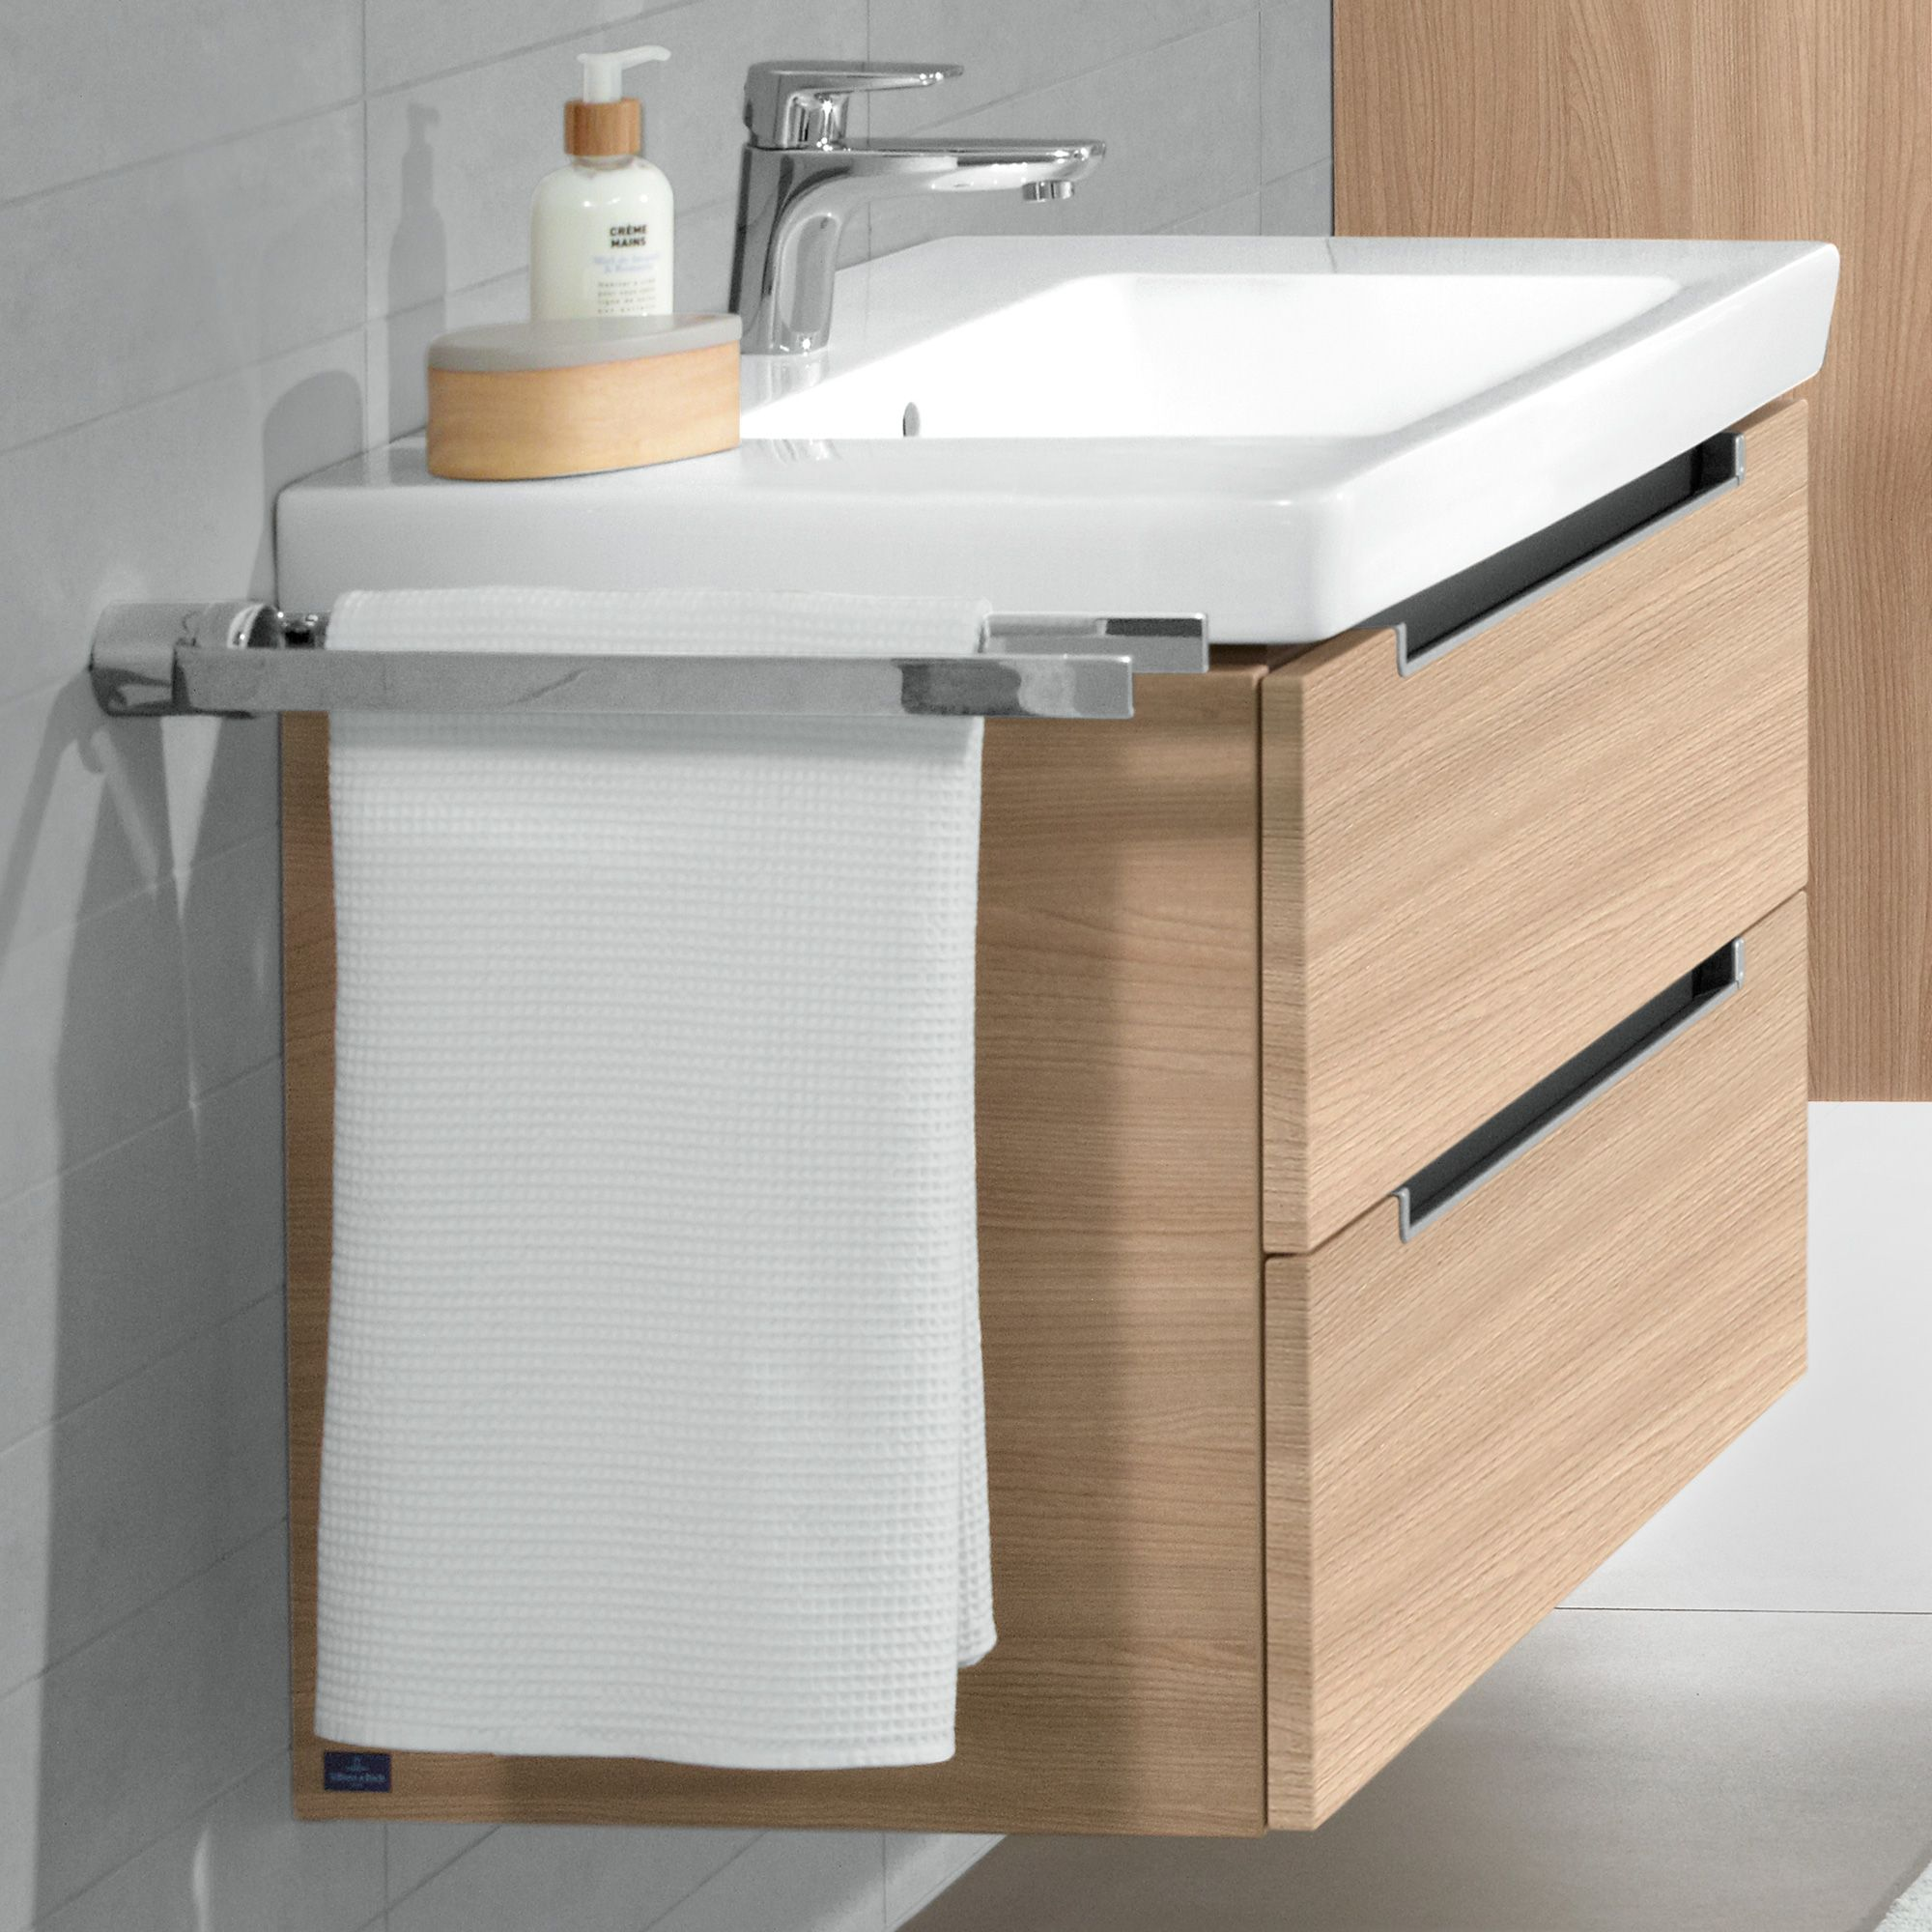 Villeroy & Boch elm impresso Subway 2.0 A68900 | Bathroom | Pinterest